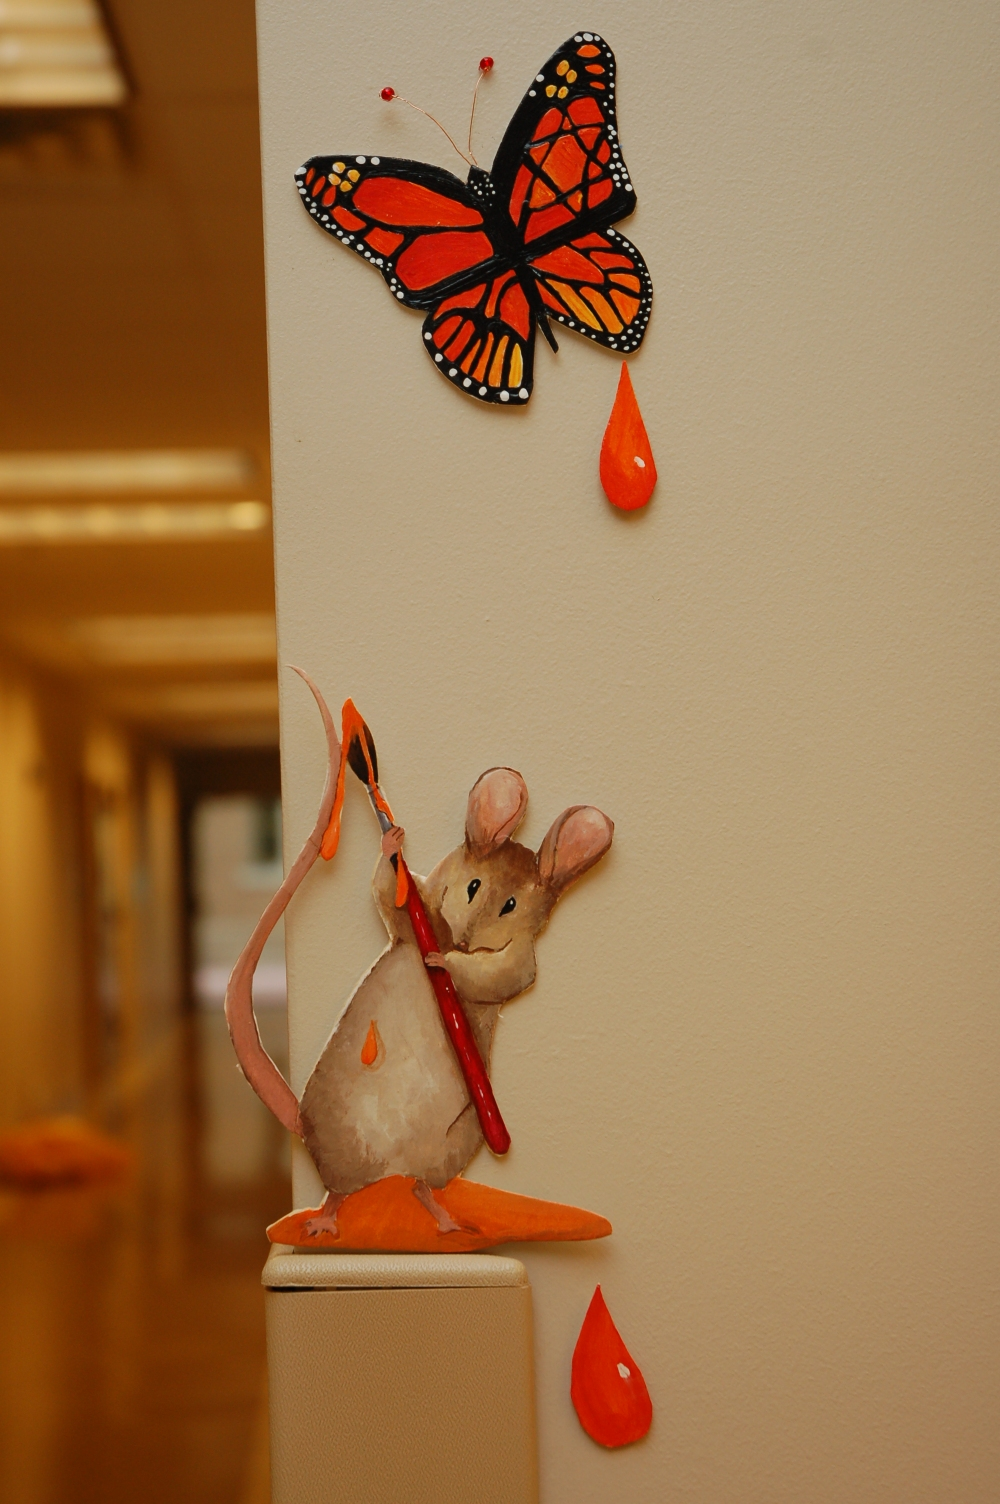 I painted this little mouse & Monarch butterfly for the preschool I worked for.